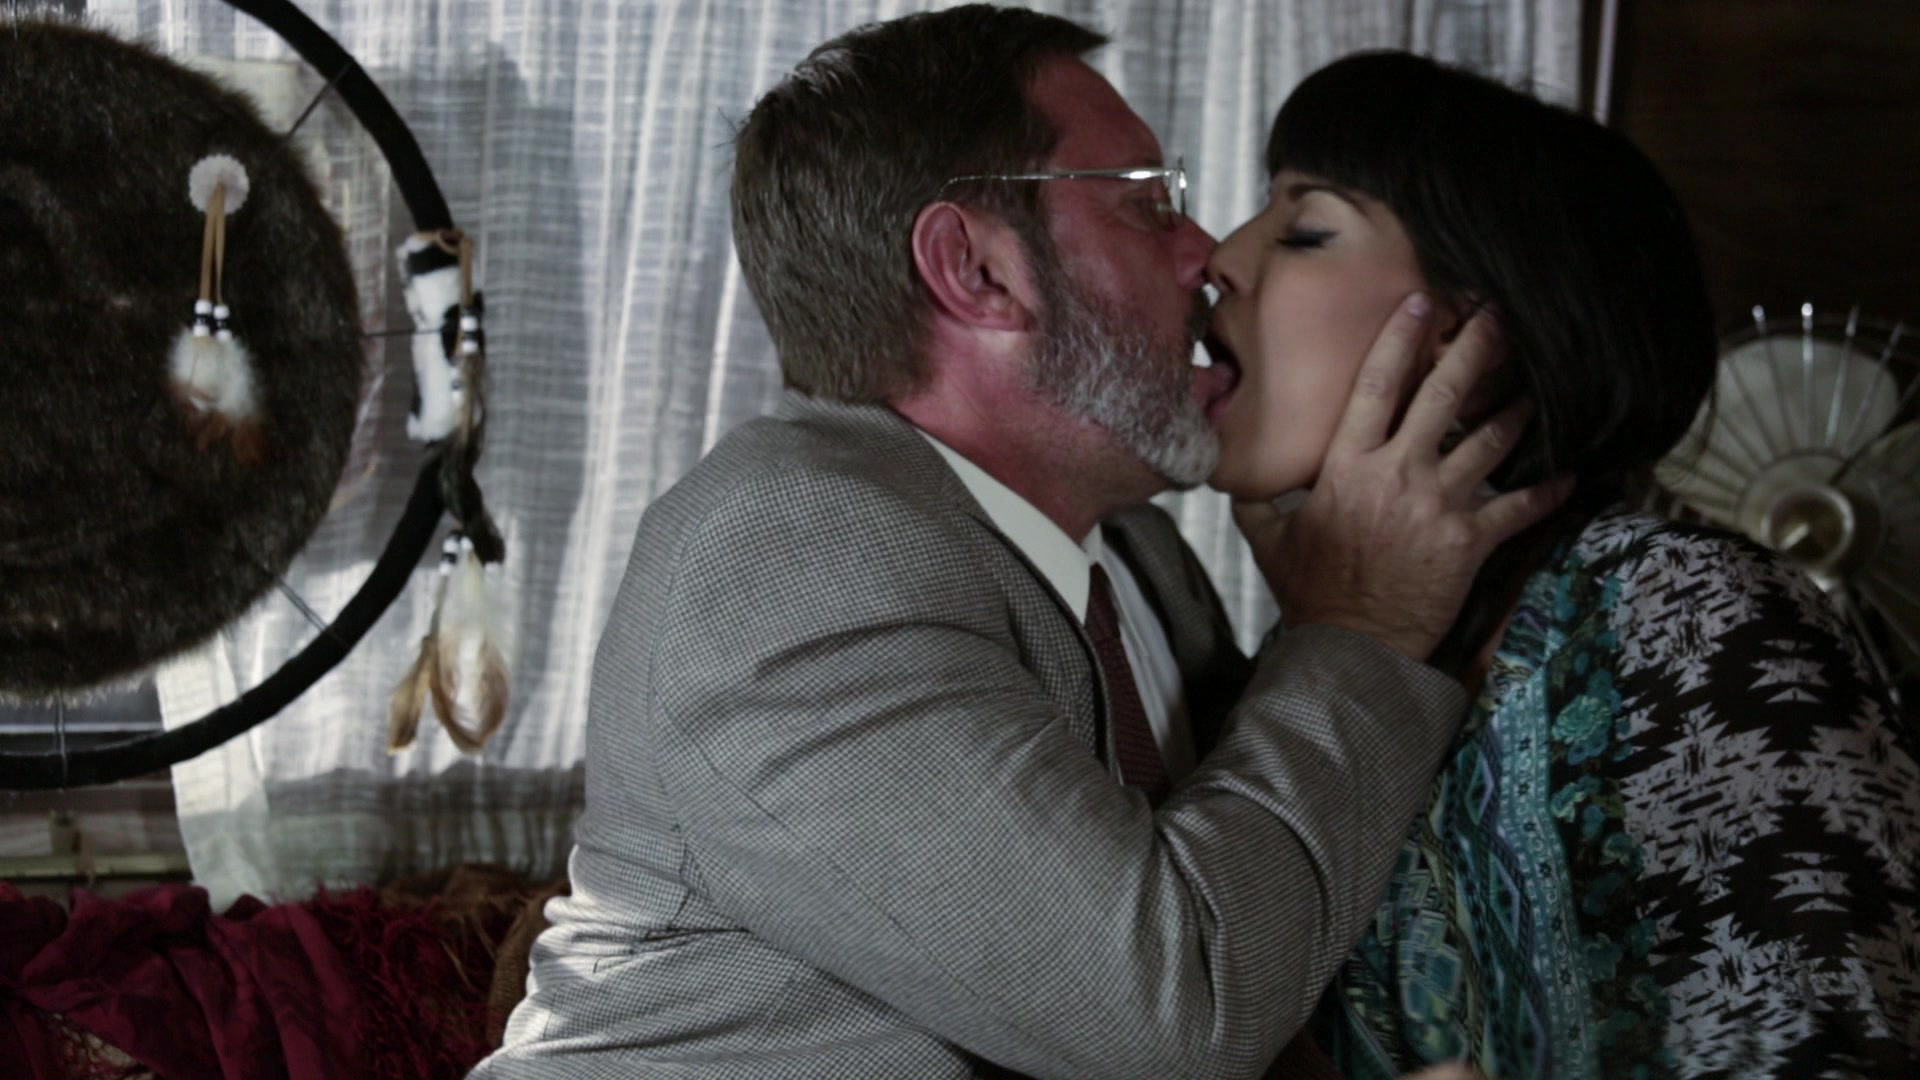 Scene with Brad Armstrong and Mercedes Carrera - image 6 out of 20